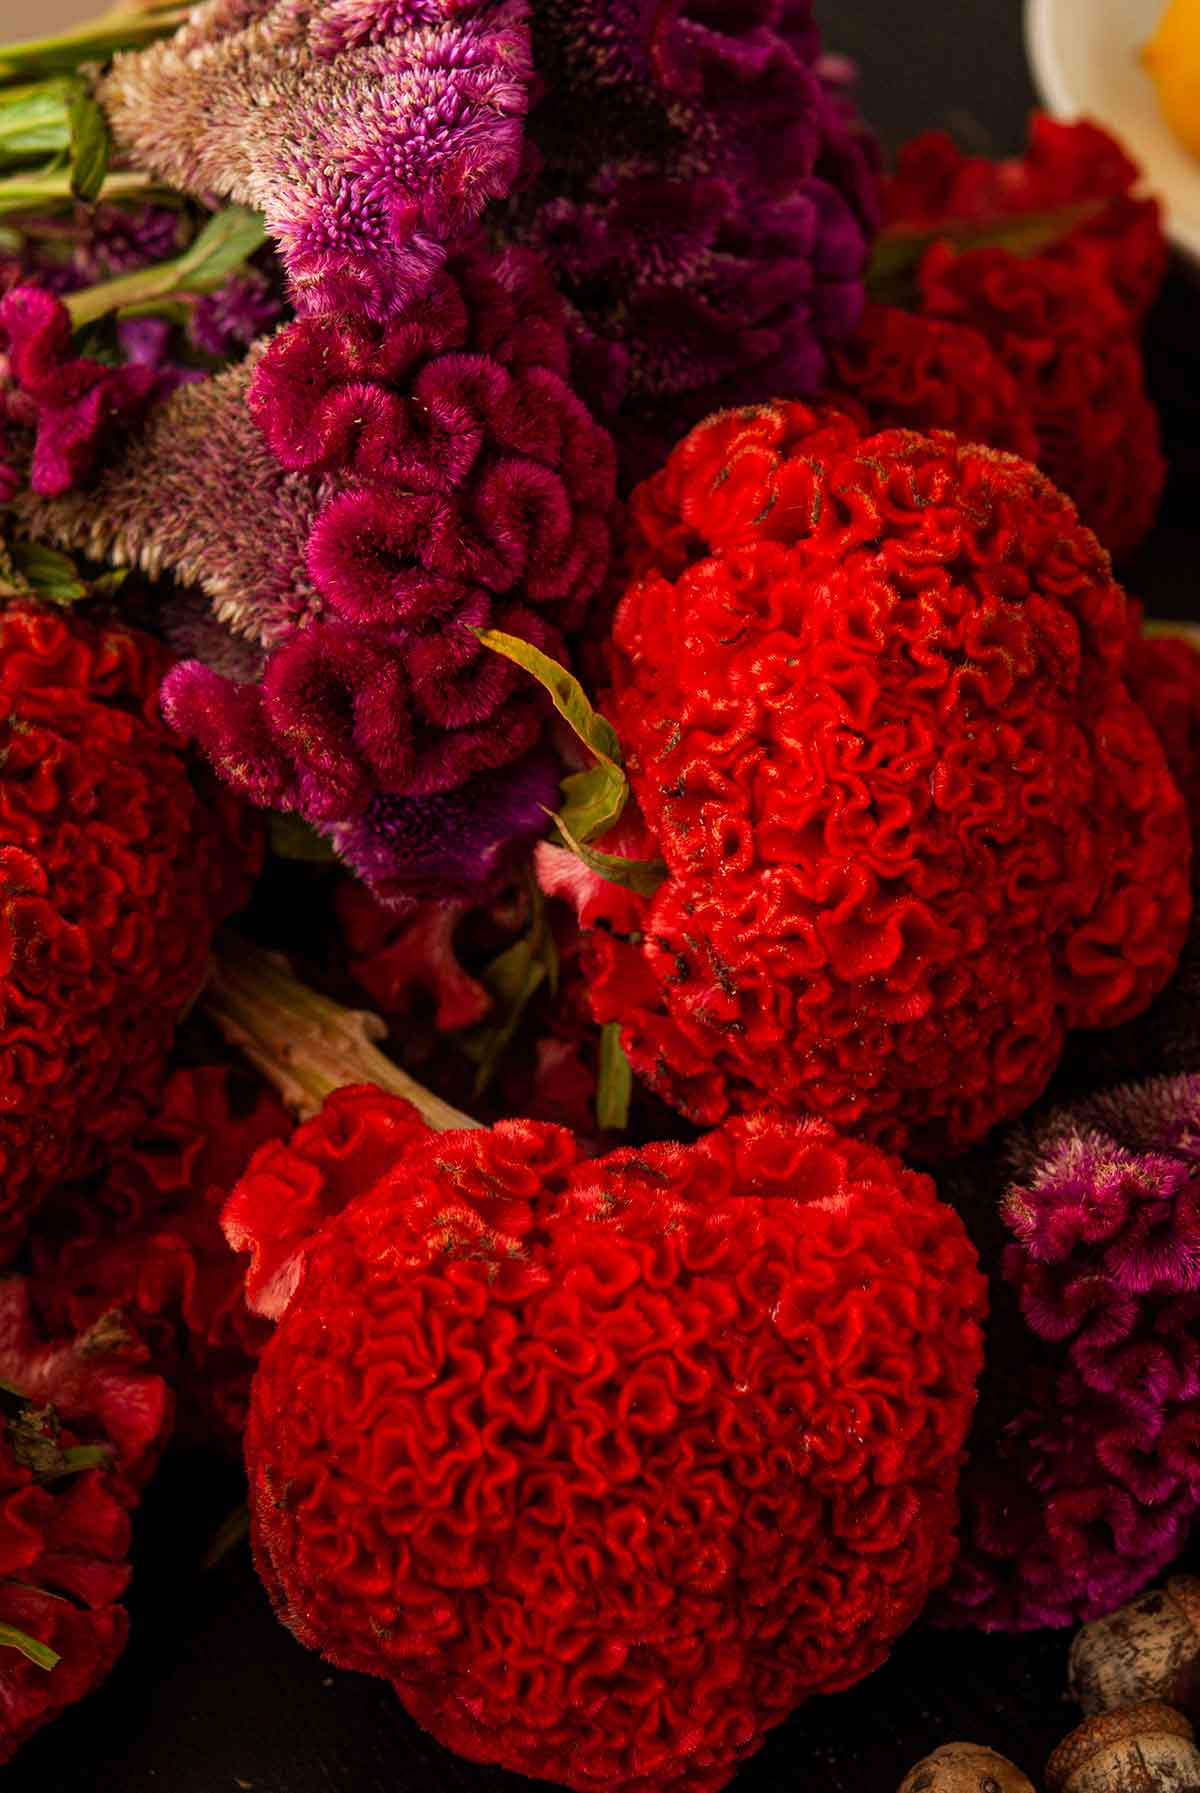 Bright Cockscomb flowers.